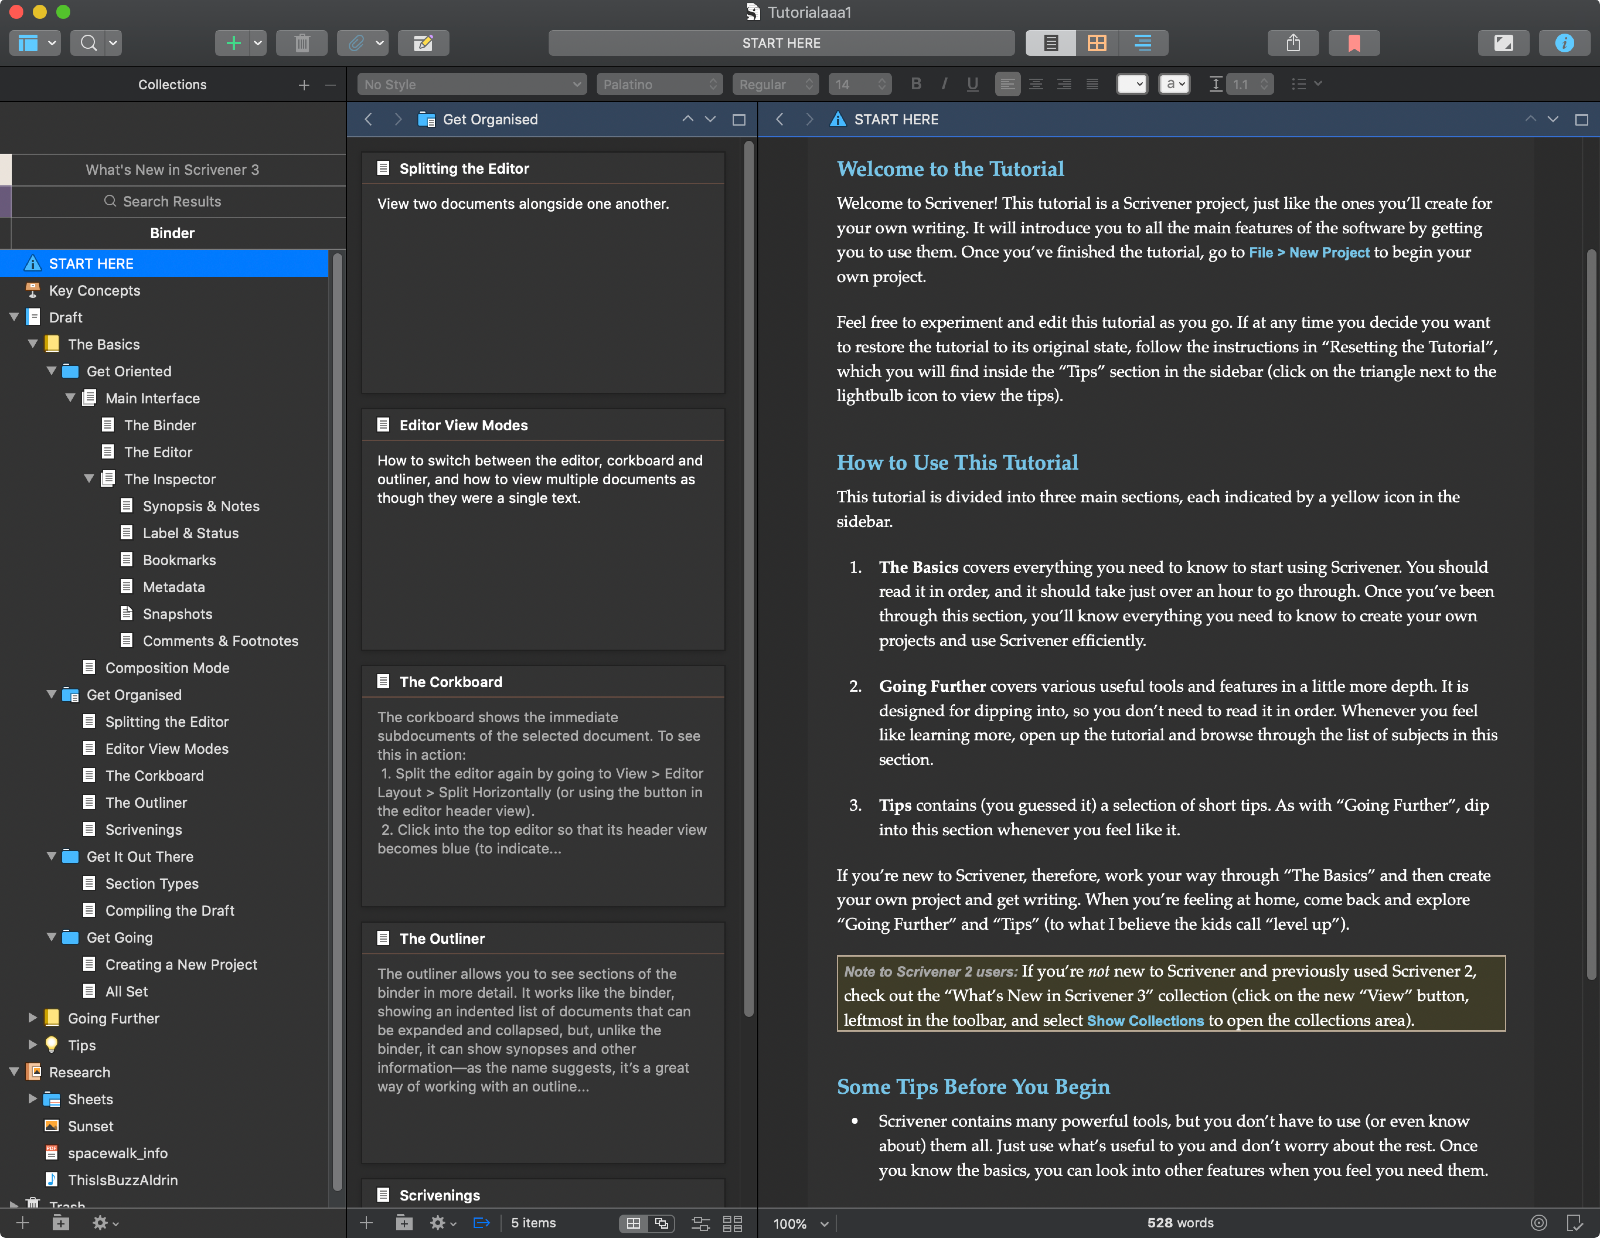 The Best Writing App of 2019 - The Writing Cooperative